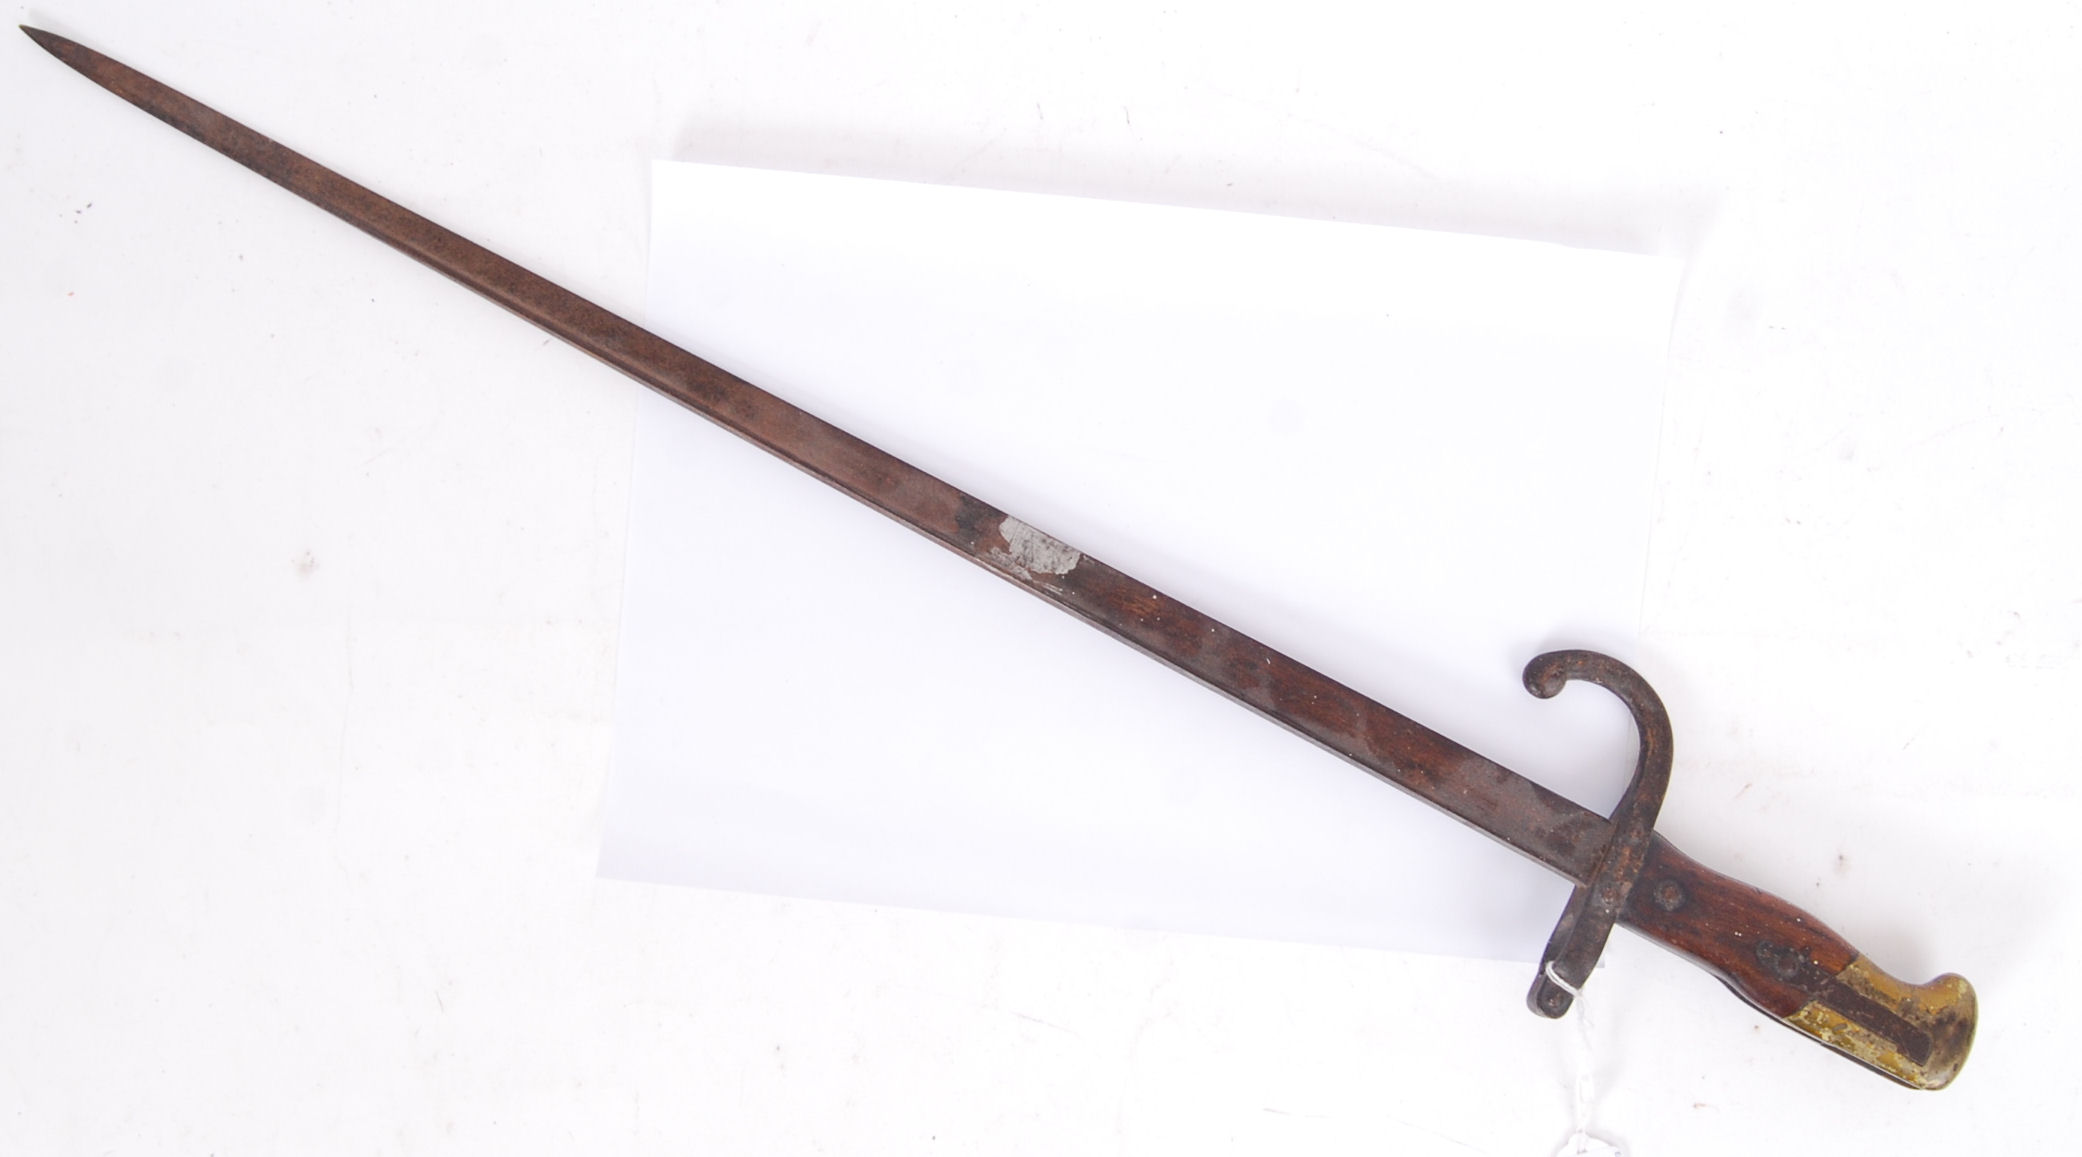 Lot 109 - 19TH CENTURY FRENCH BAYONET